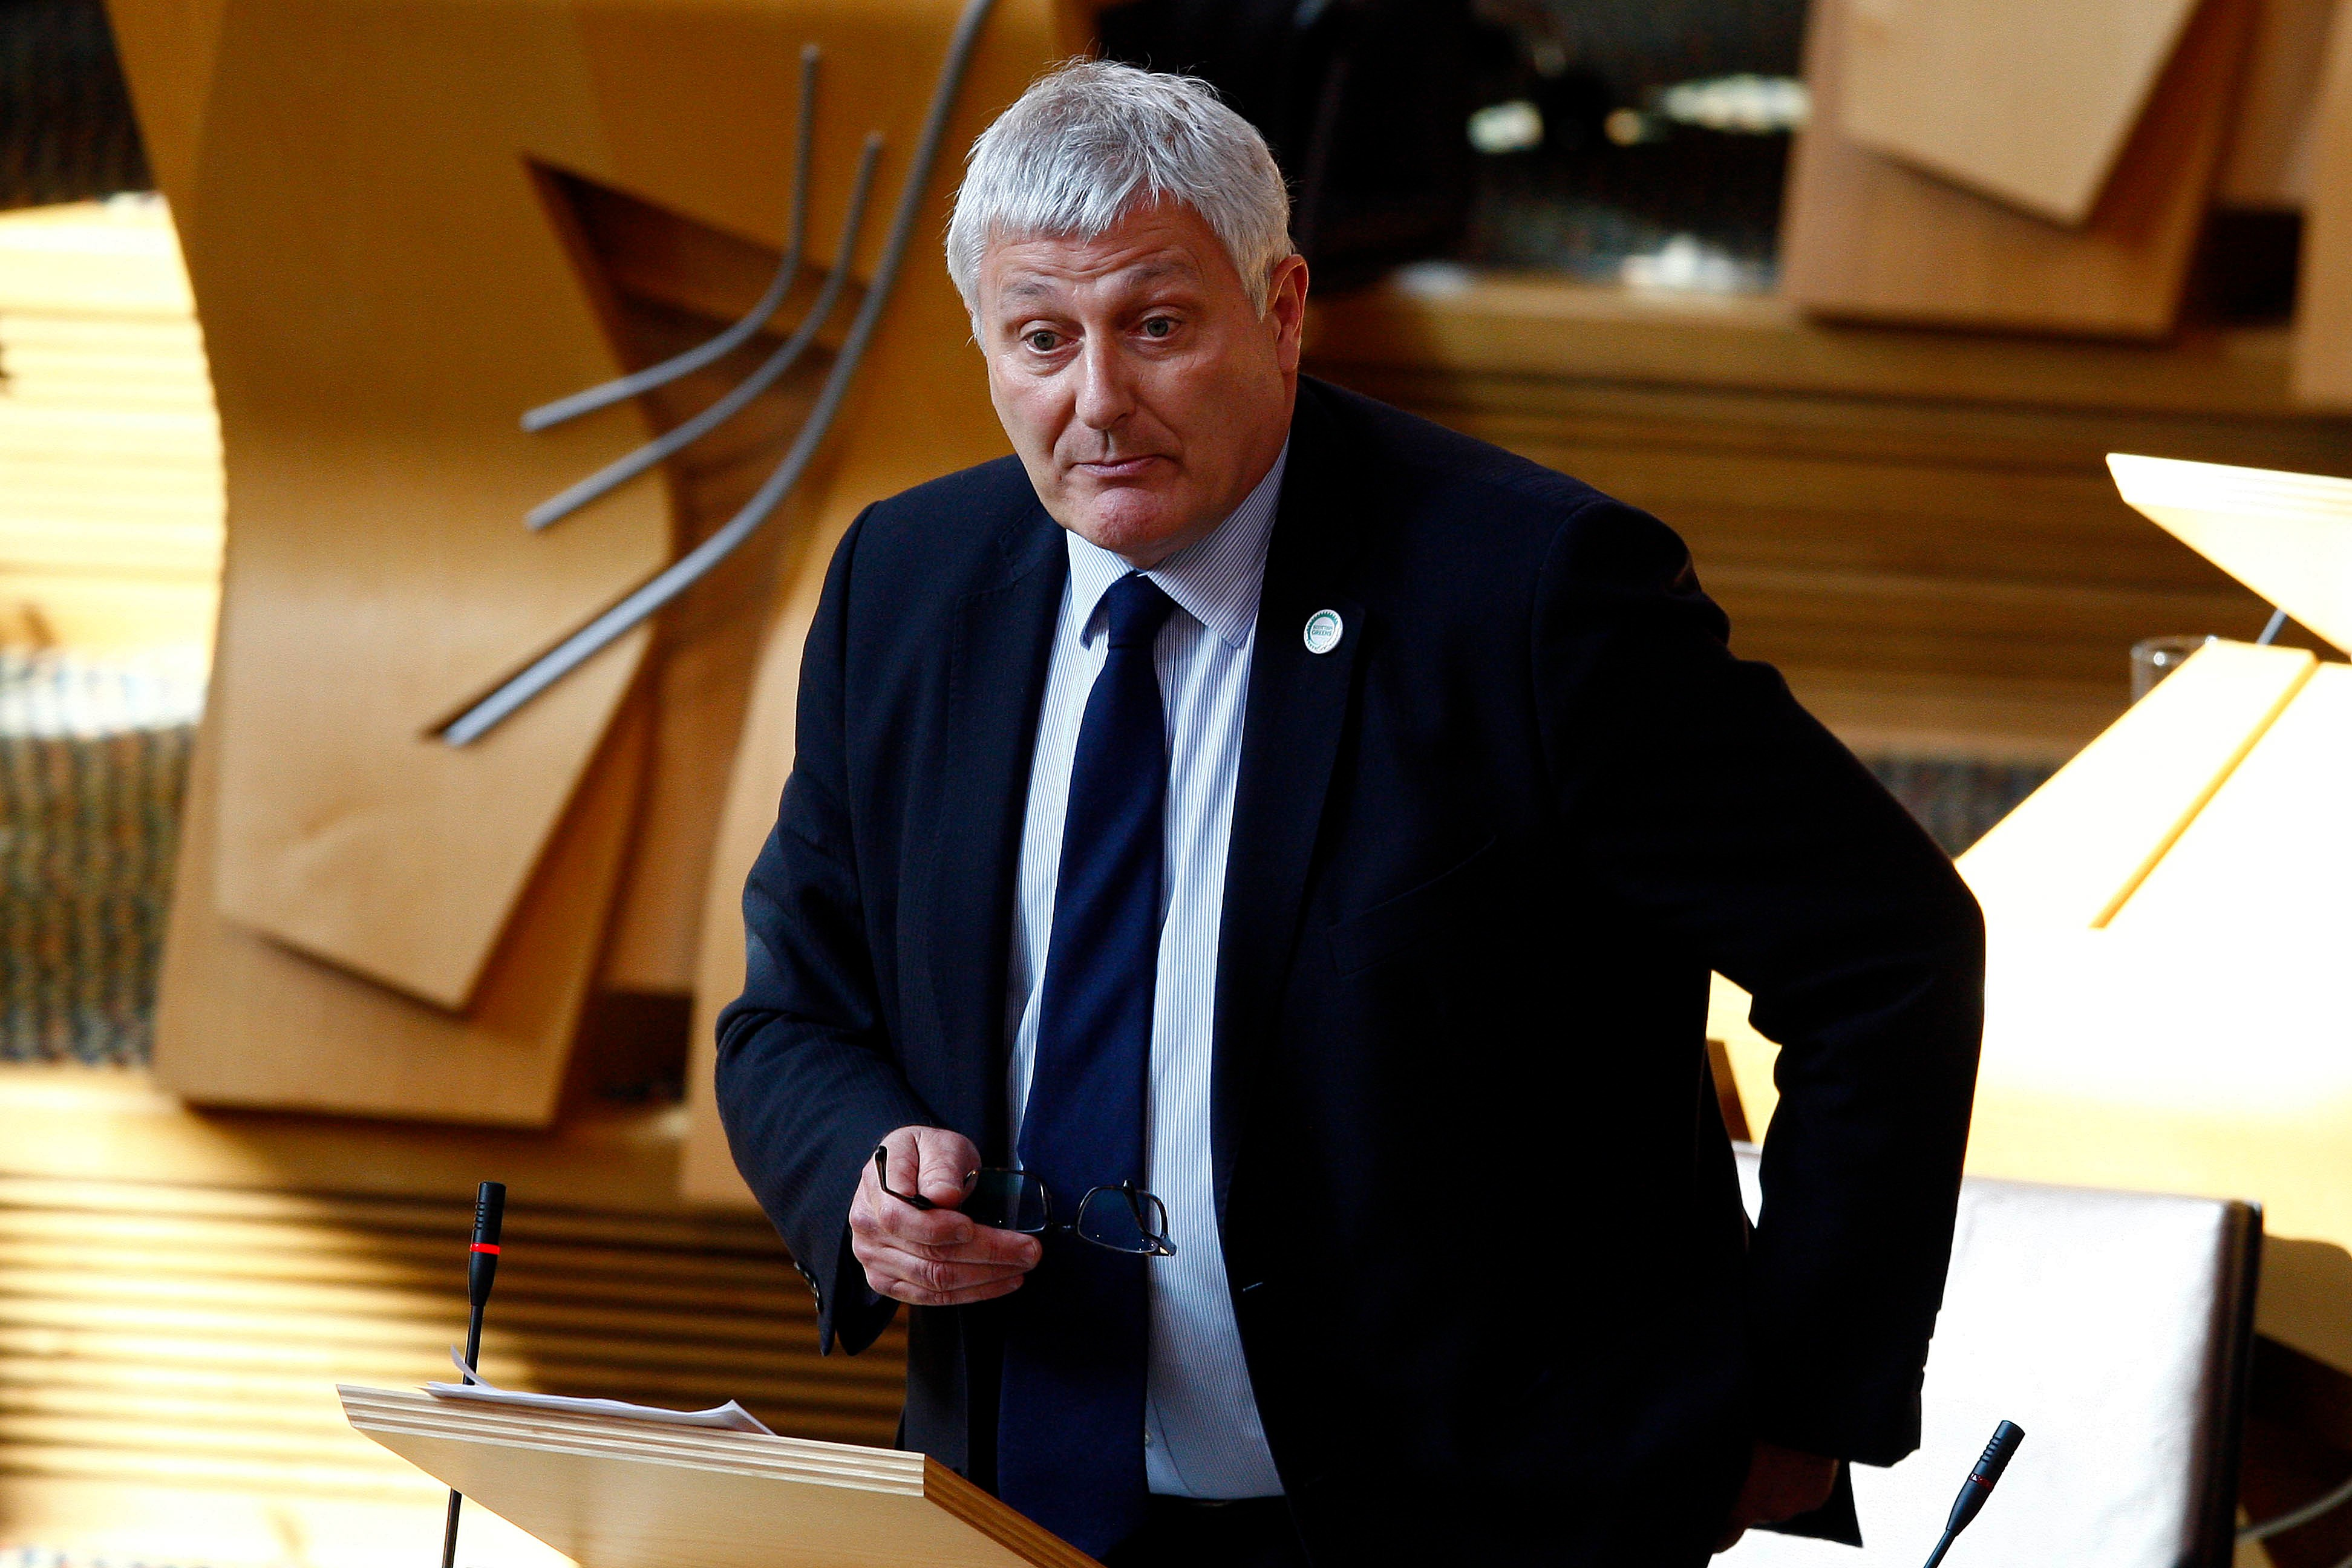 John Finnie MSP opens his debate on Ship-to-ship Oil Transfers in the Cromarty and Moray Firths 02 May 2017 . Pic - Andrew Cowan/Scottish Parliament